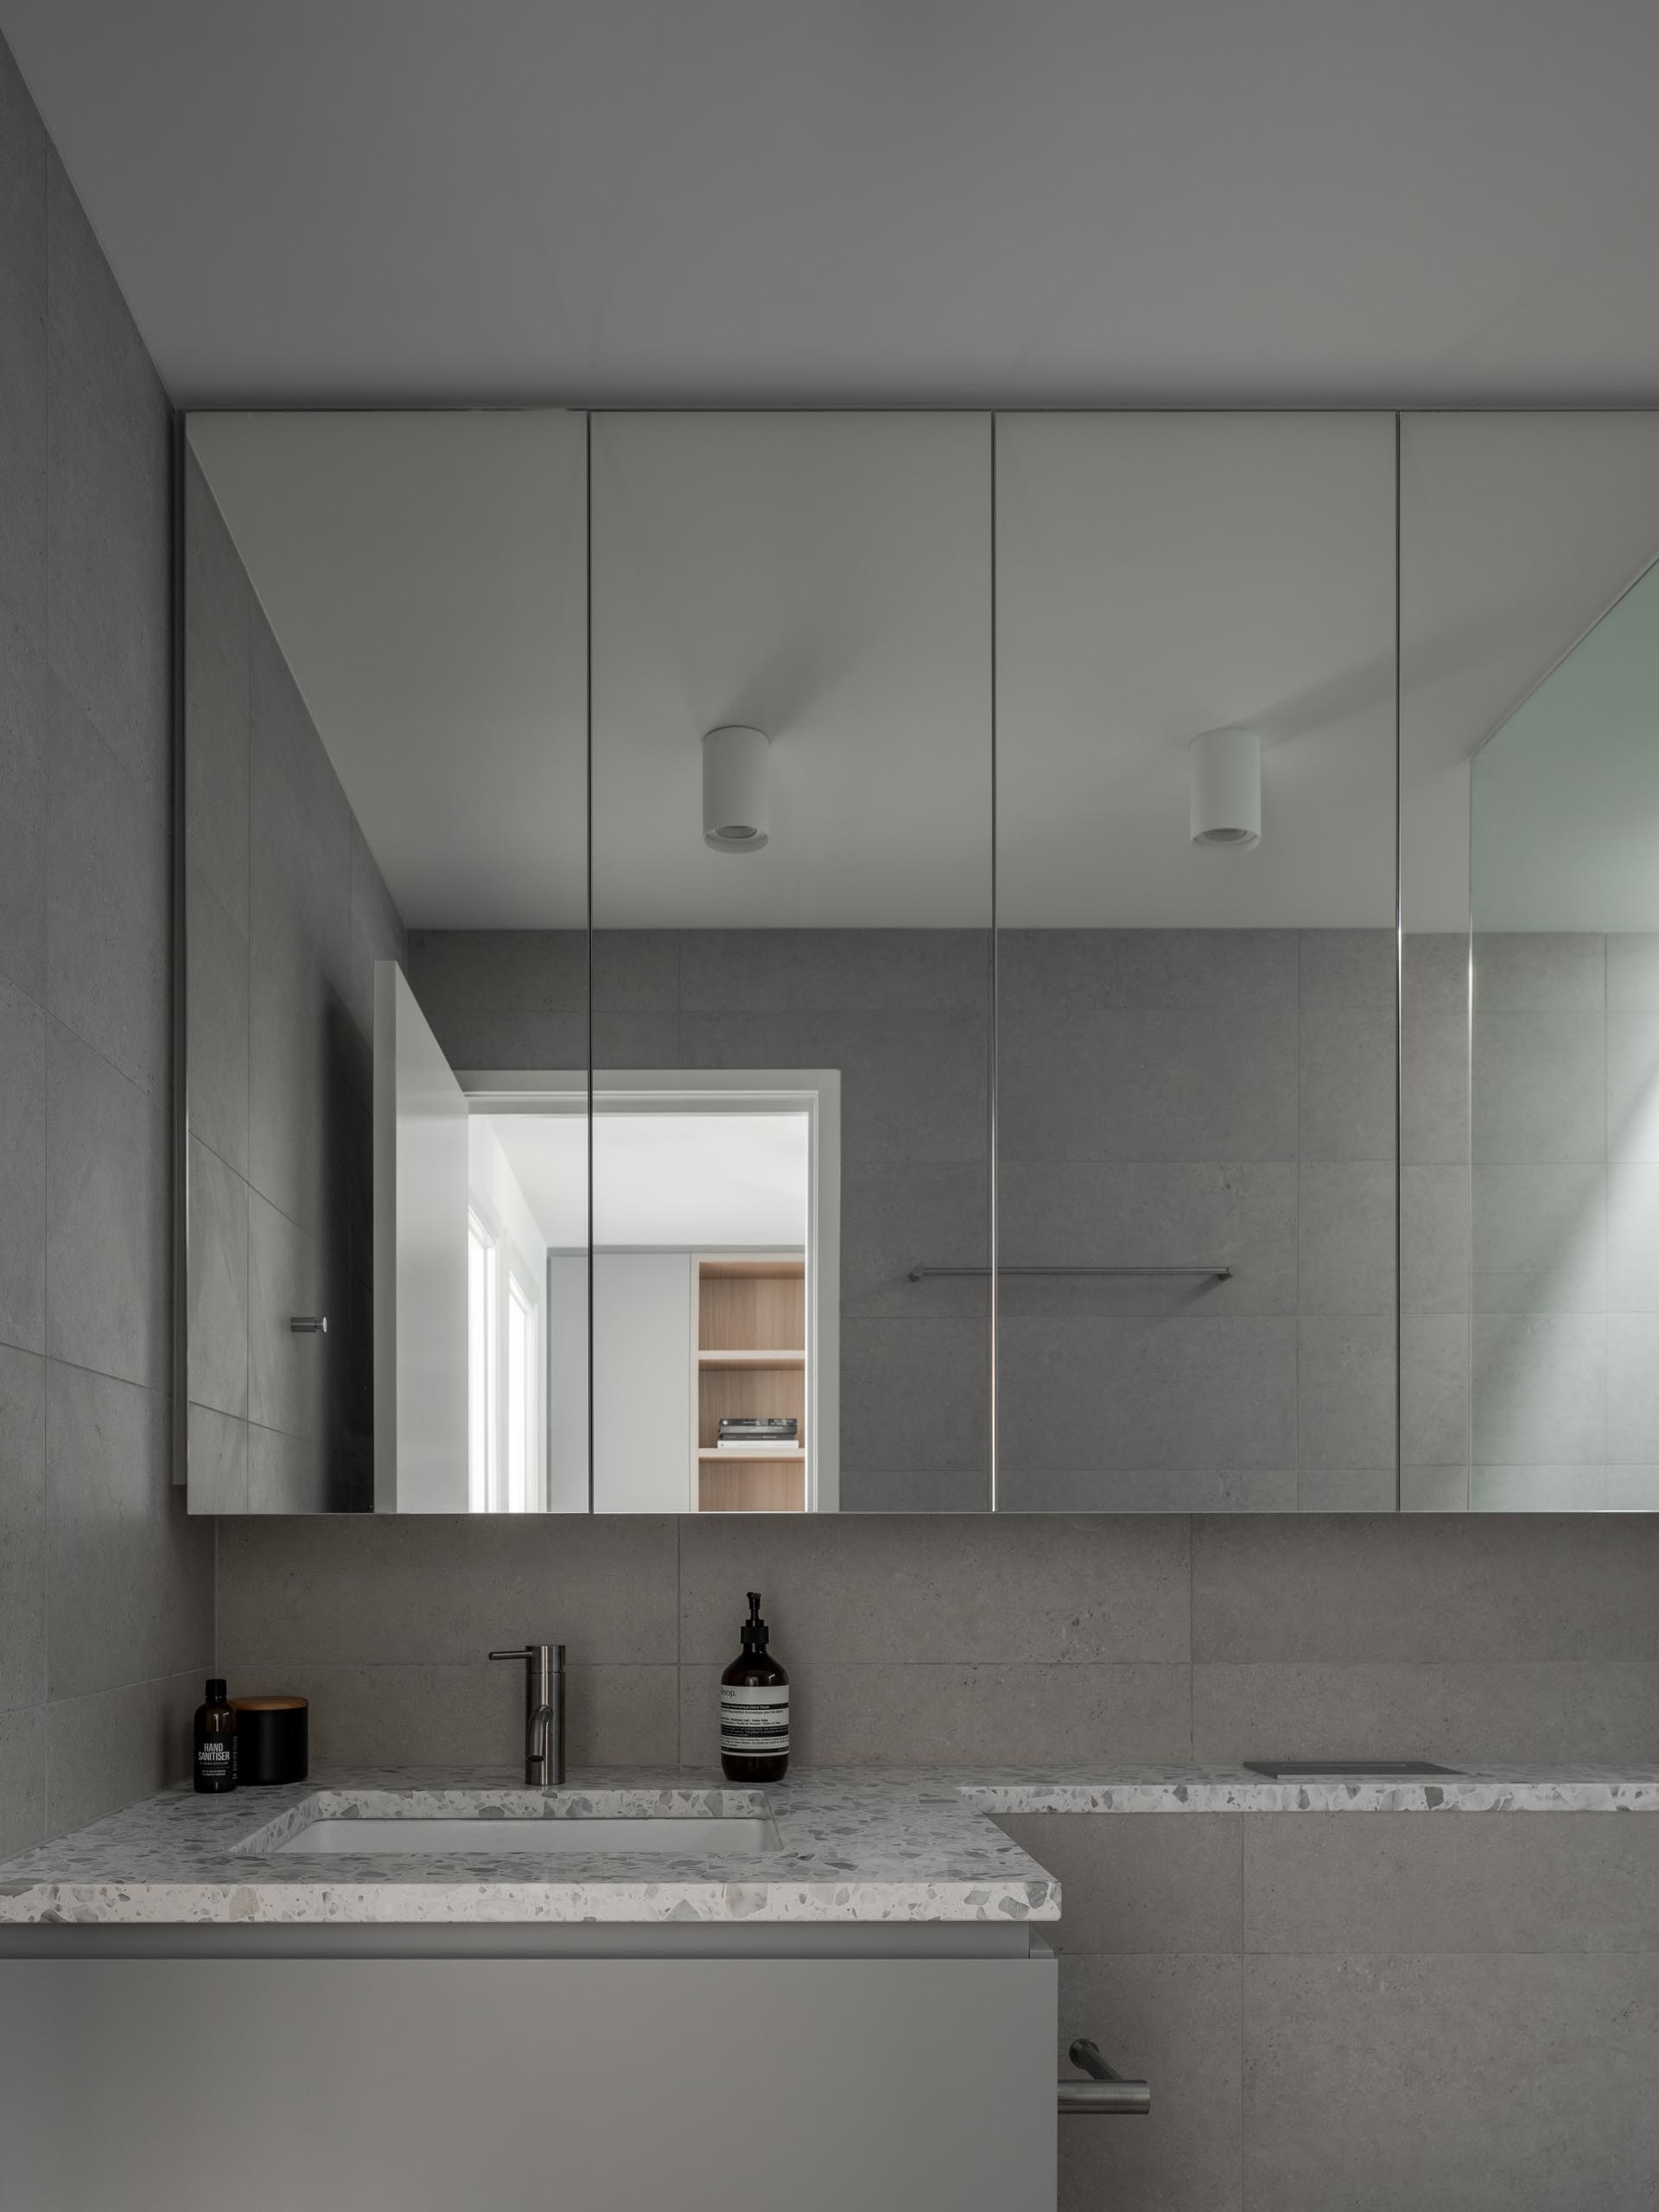 A gray bathroom with a white stone countertop.